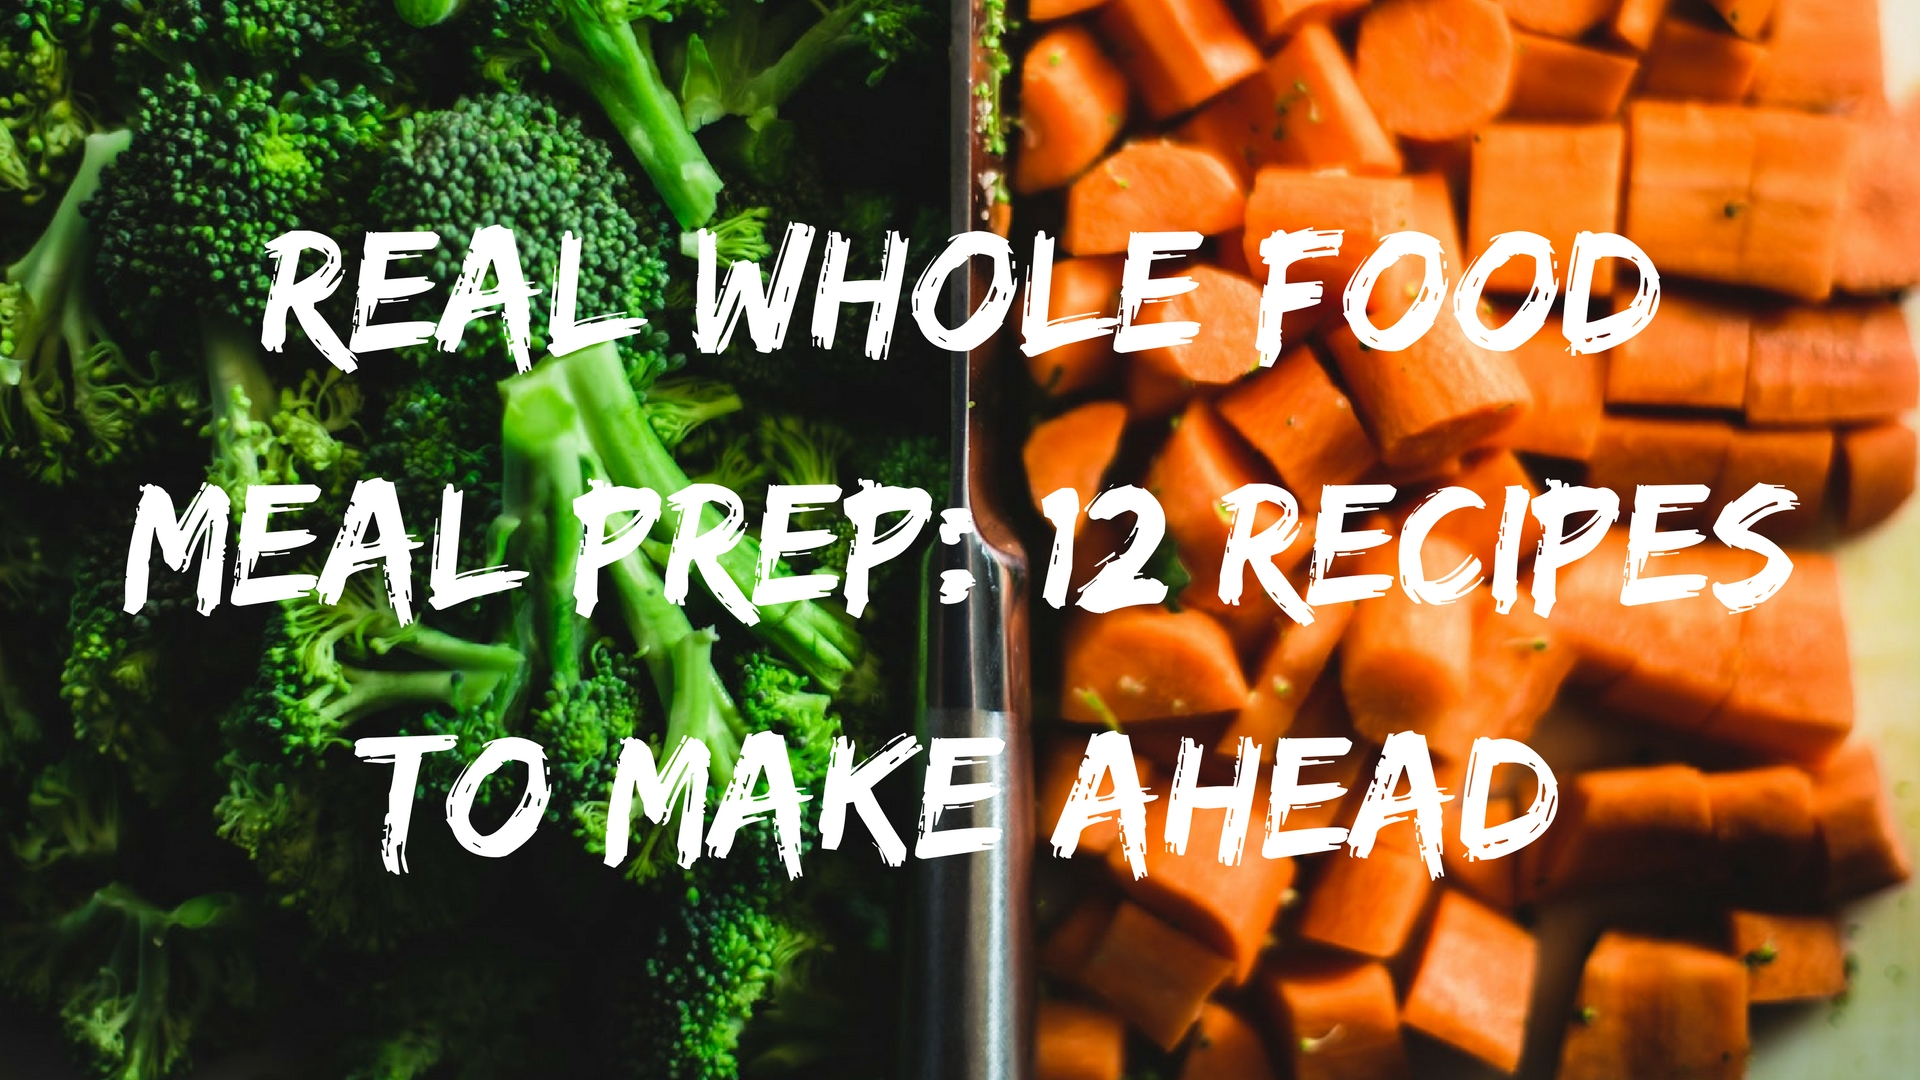 Real Whole Food Meal Prep: 13 Recipes to Make Ahead